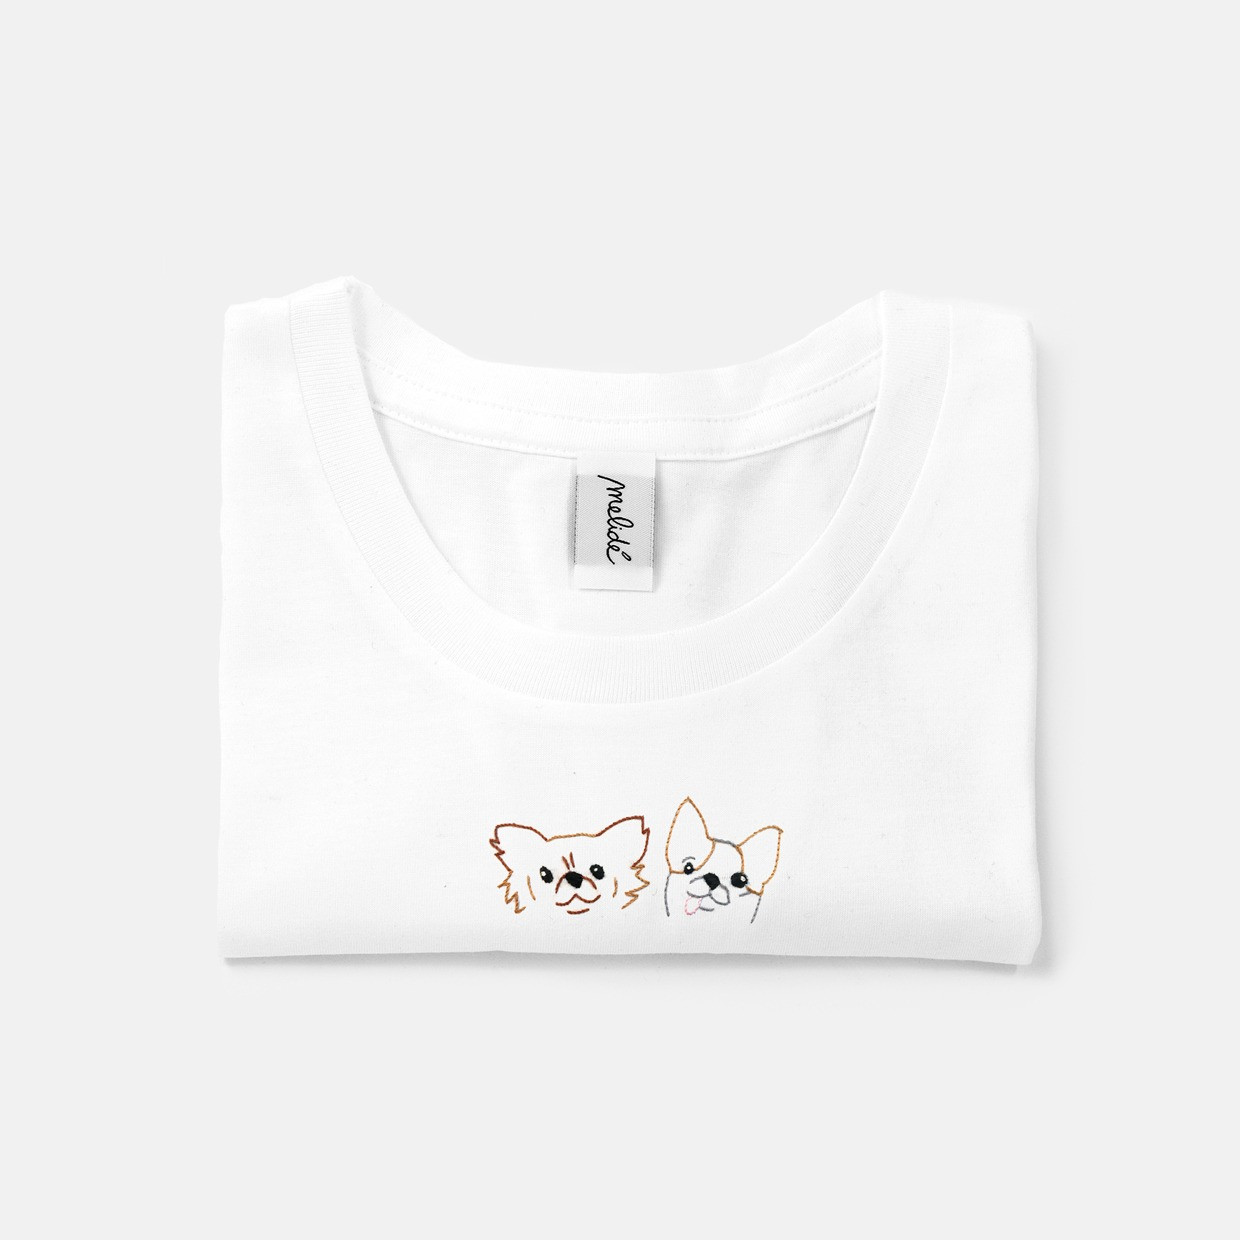 The Gue and Chew ultimate tee